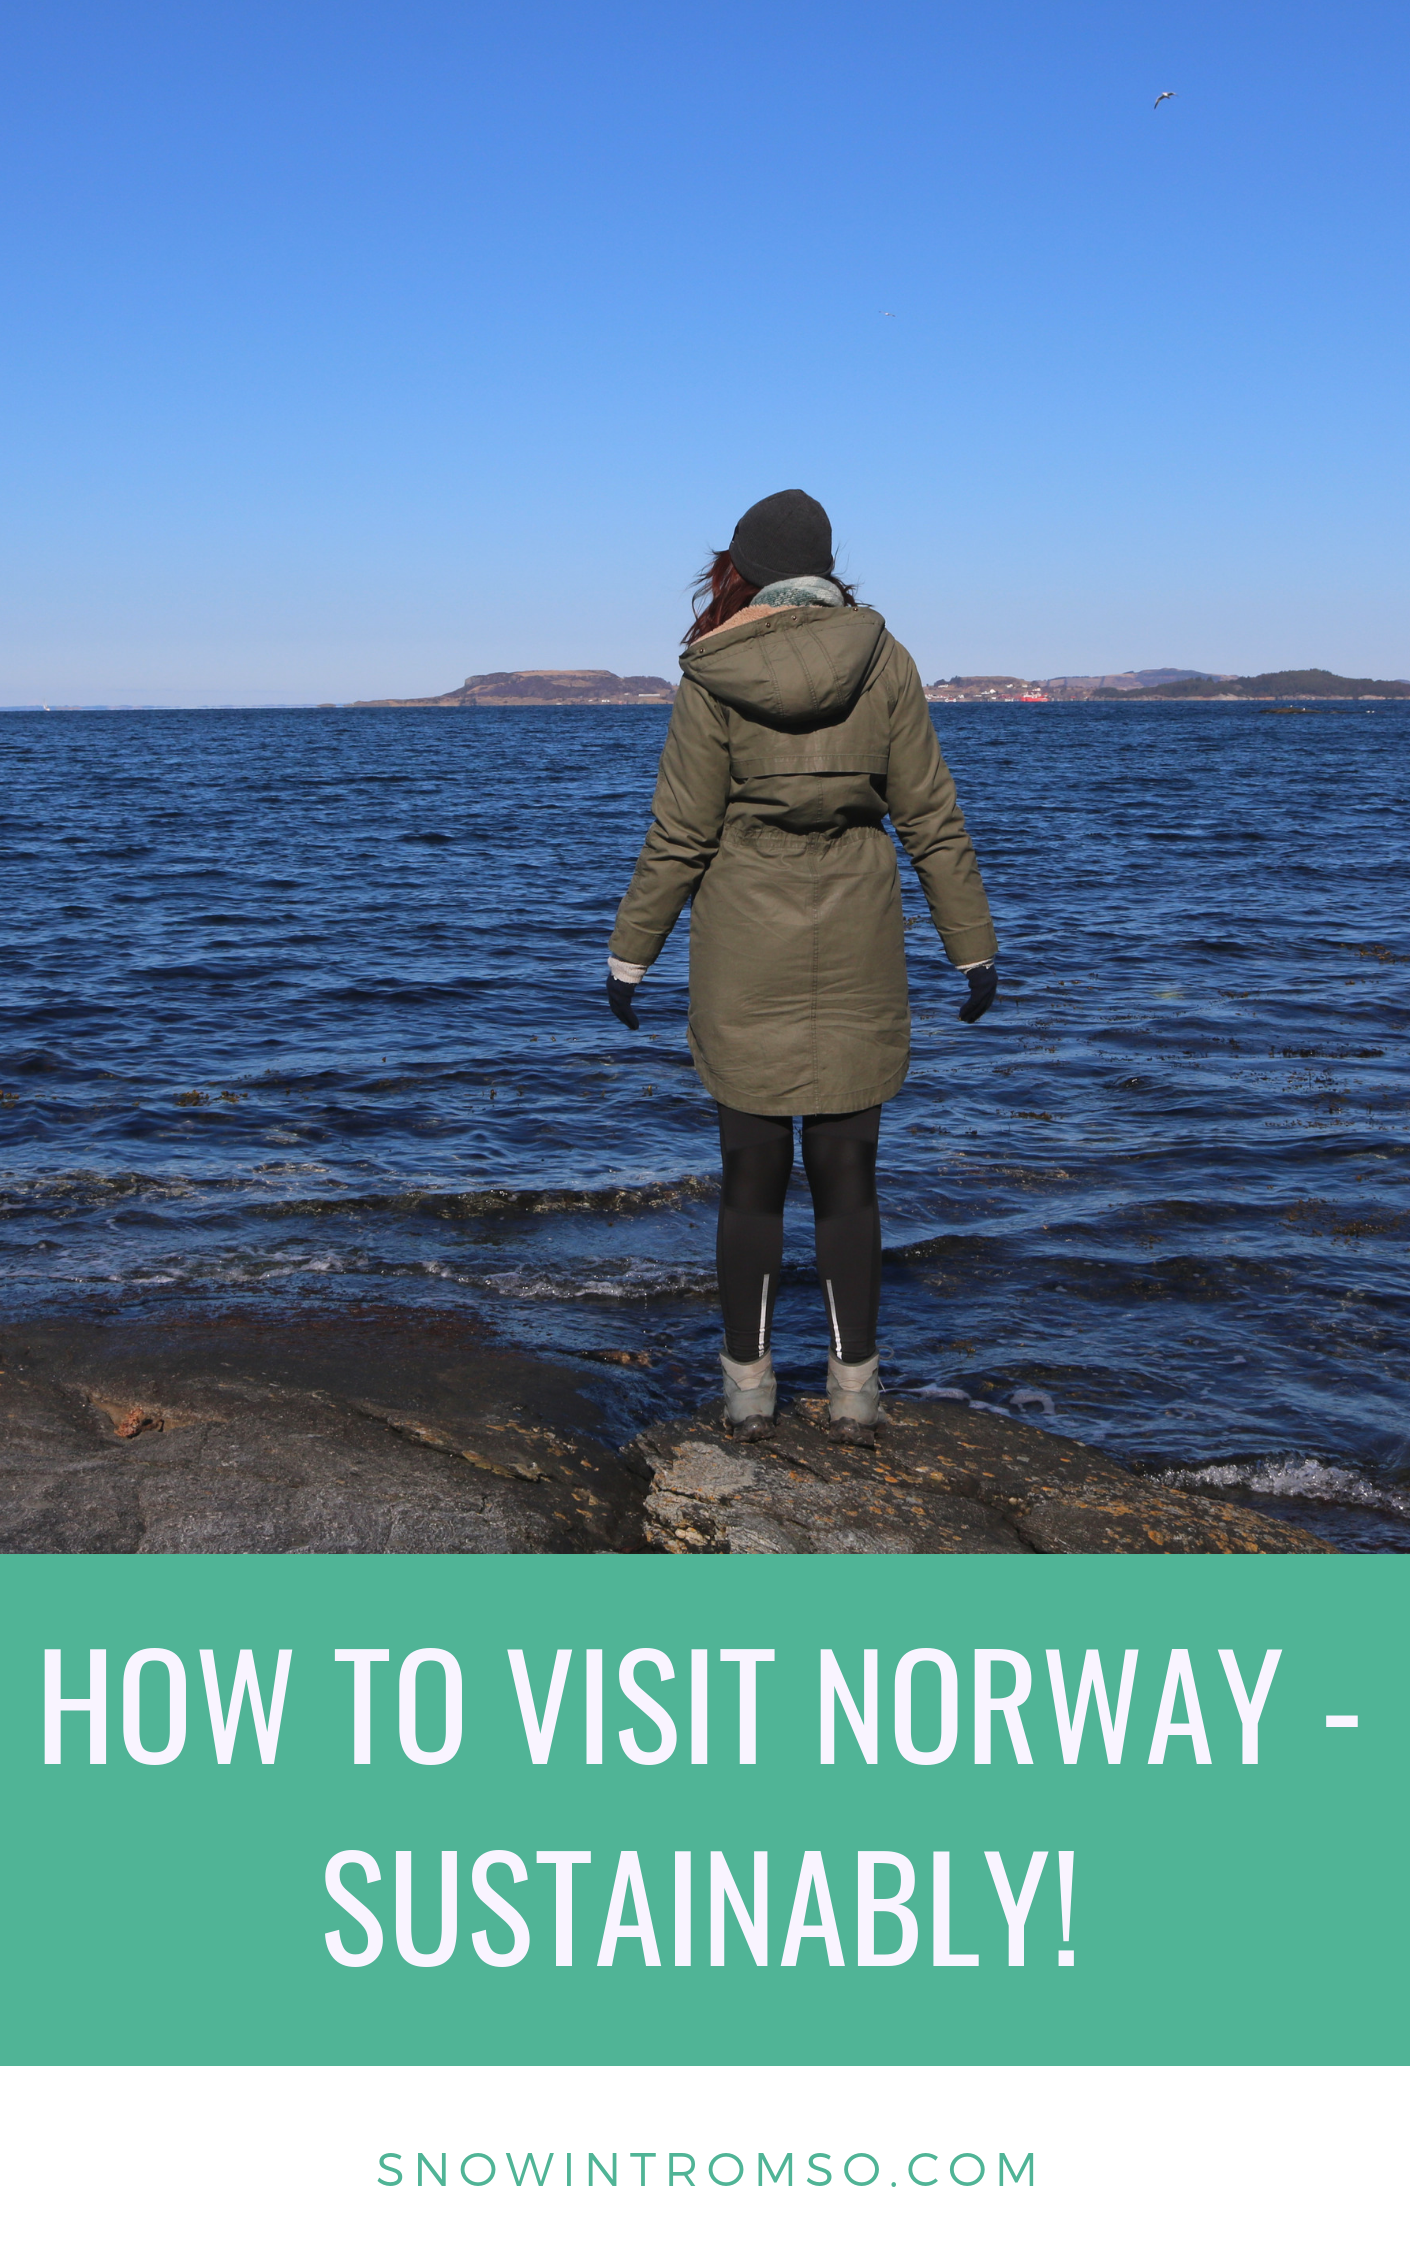 Does Pulpit Rock really need even more visitors? Let me know what you think about sustainable tourism in #Norway here: